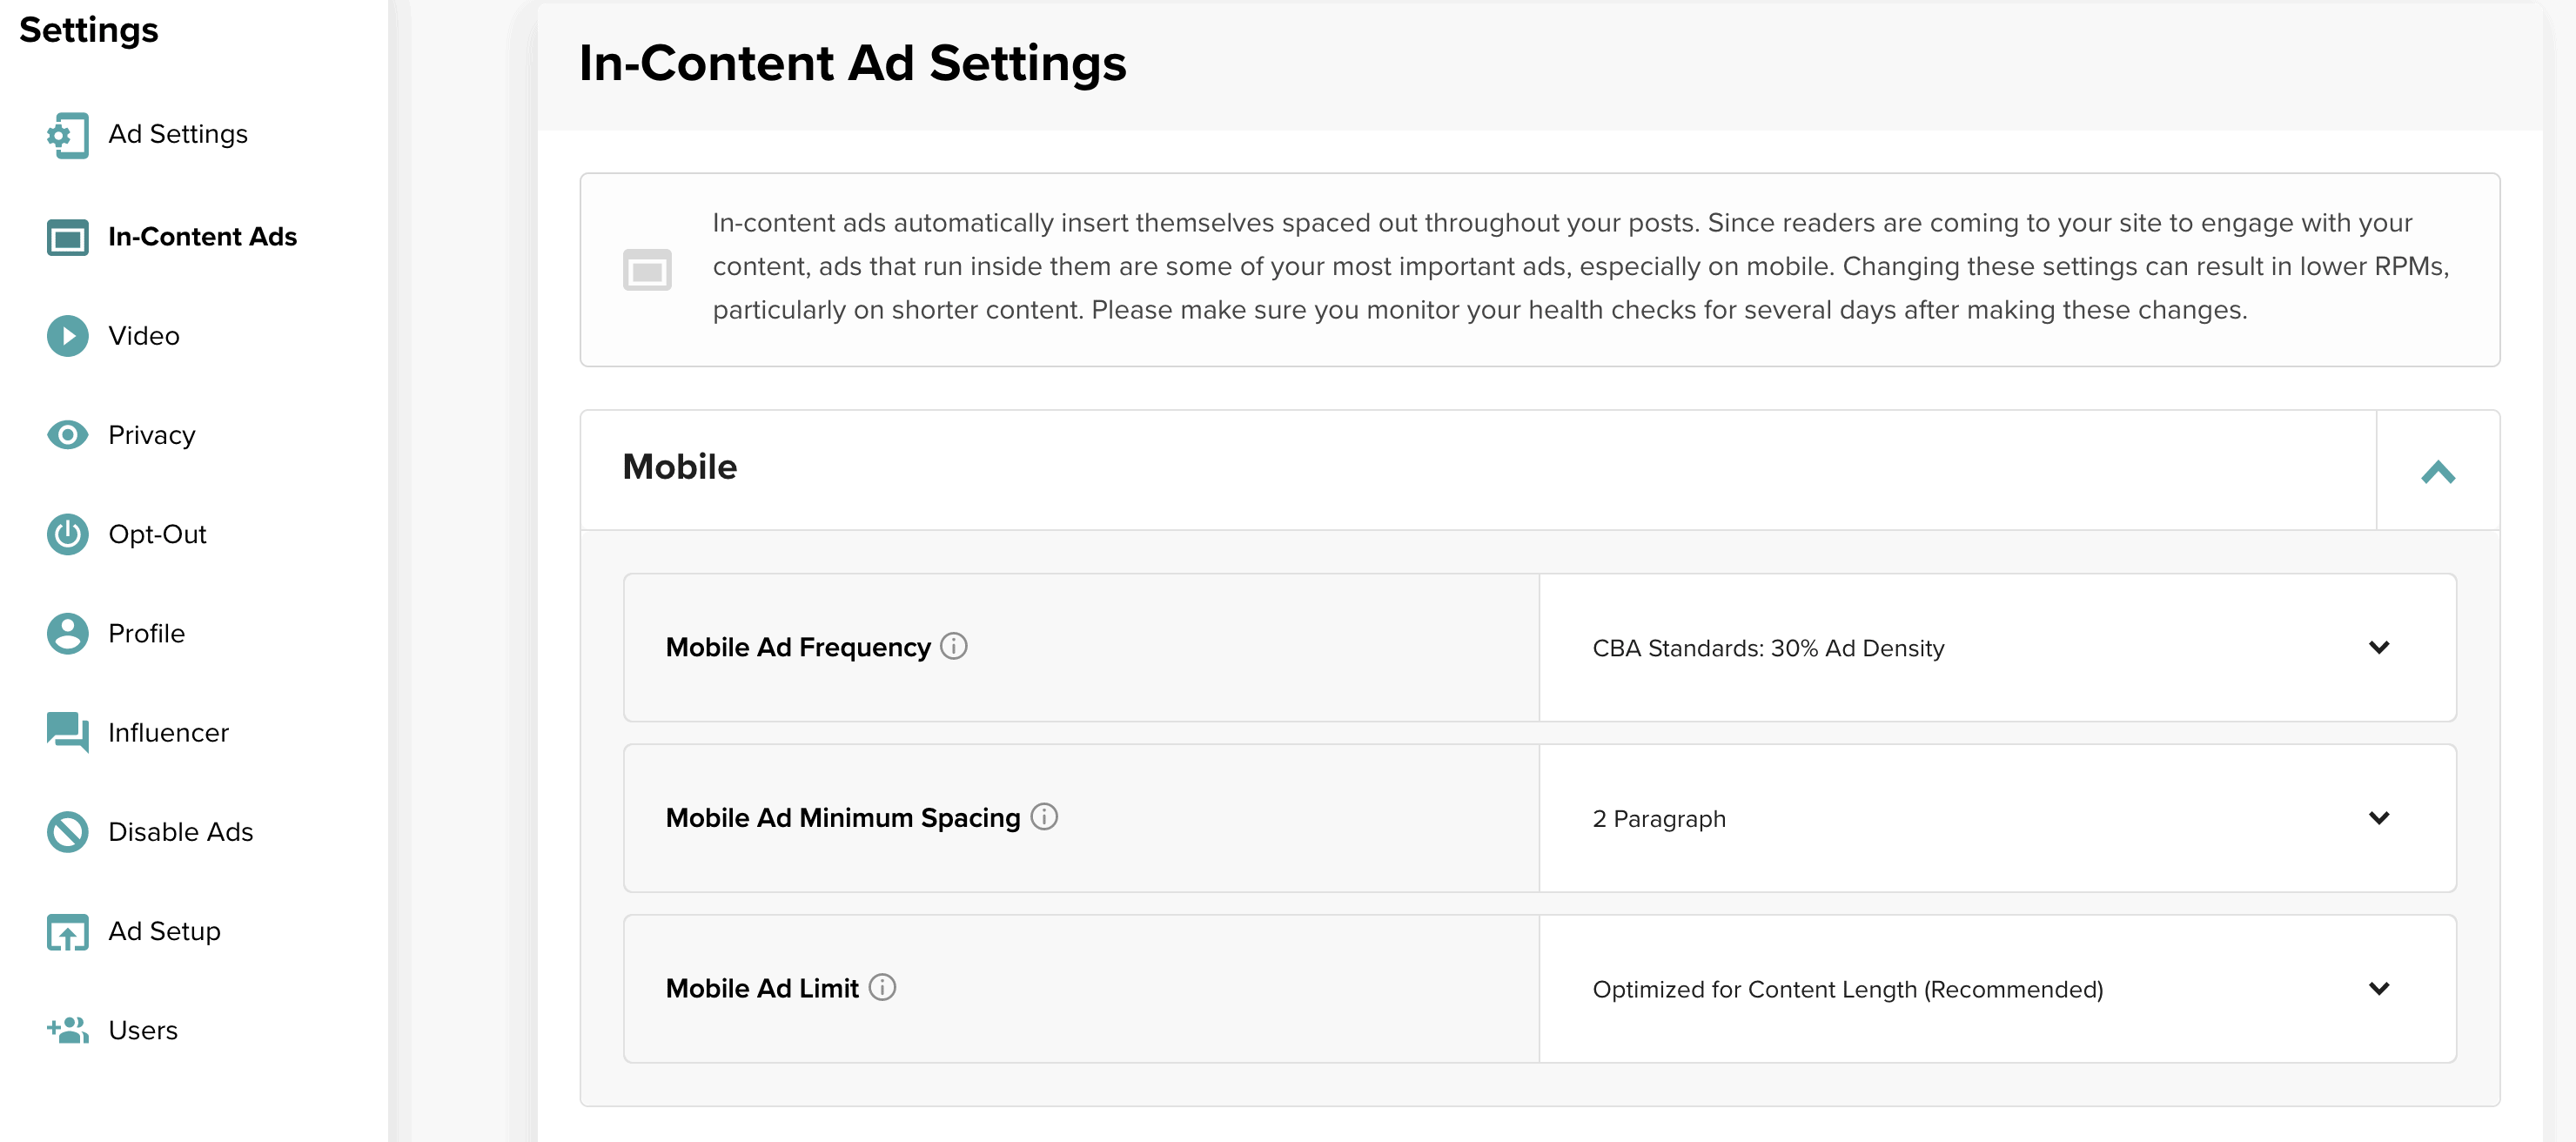 Screenshot of In-Content Ad Settings page in the Mediavine Dashboard